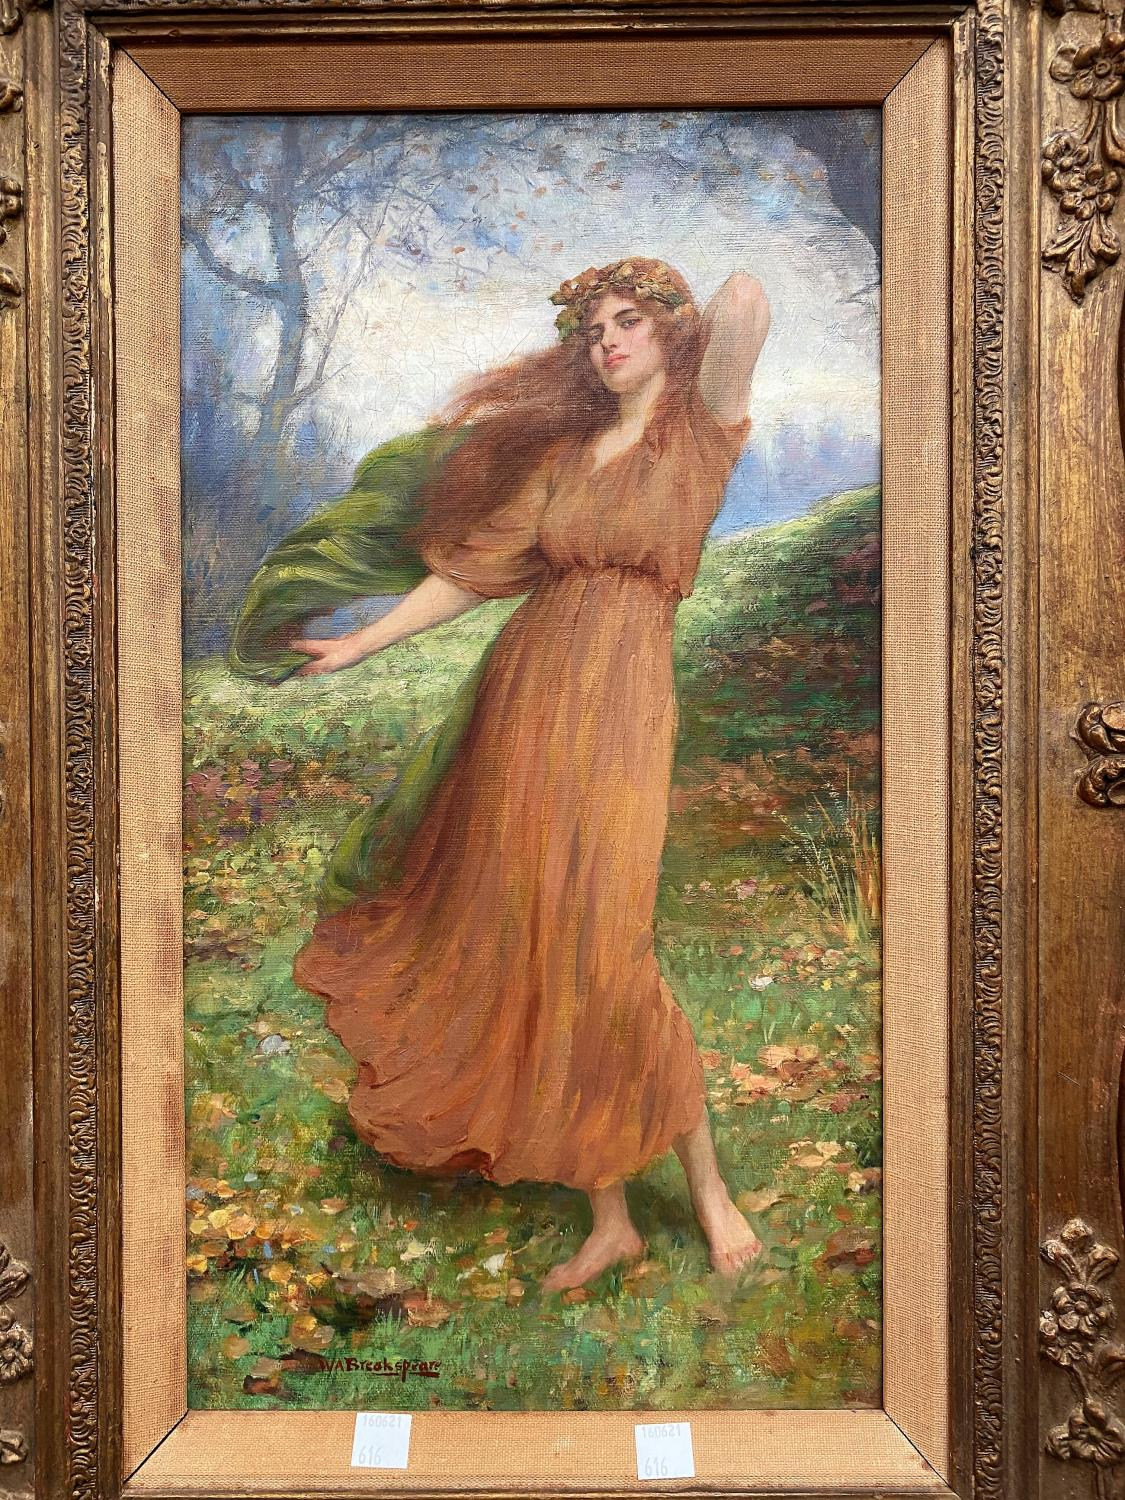 William Breakspeare (British 19th Century): oil on canvas, pre-Raphaelite portrayal of a young woman